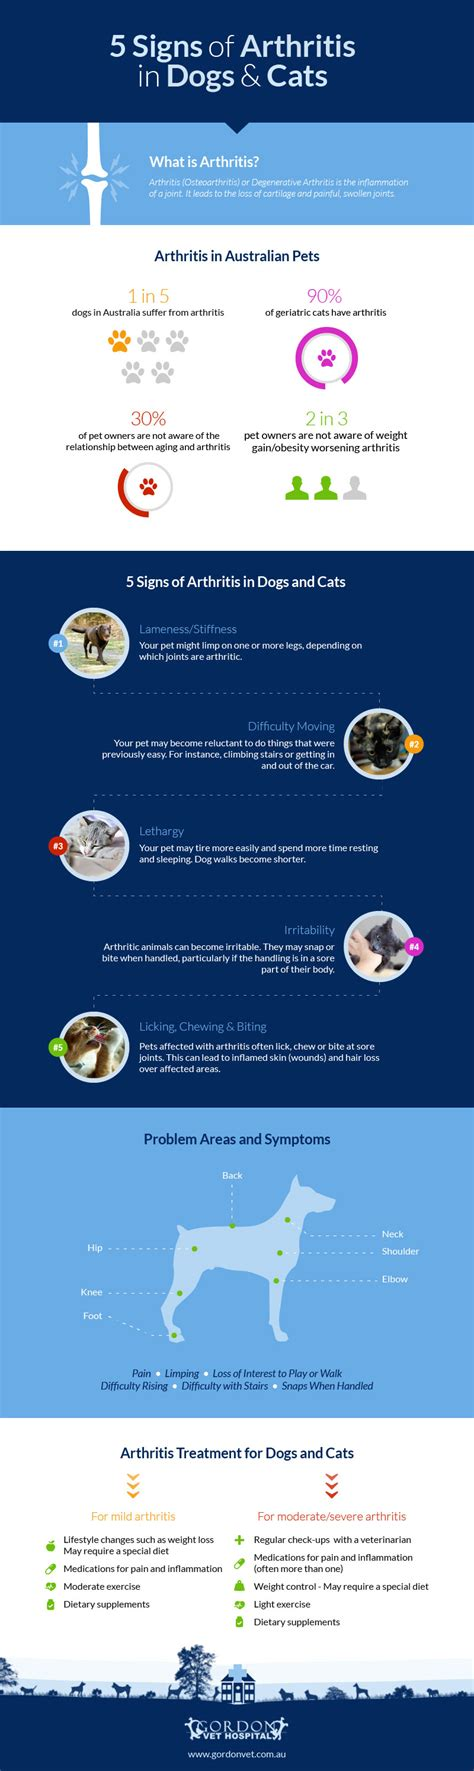 signs of arthritis in dogs 5 signs of arthritis in dogs and cats infographic petlvr archives